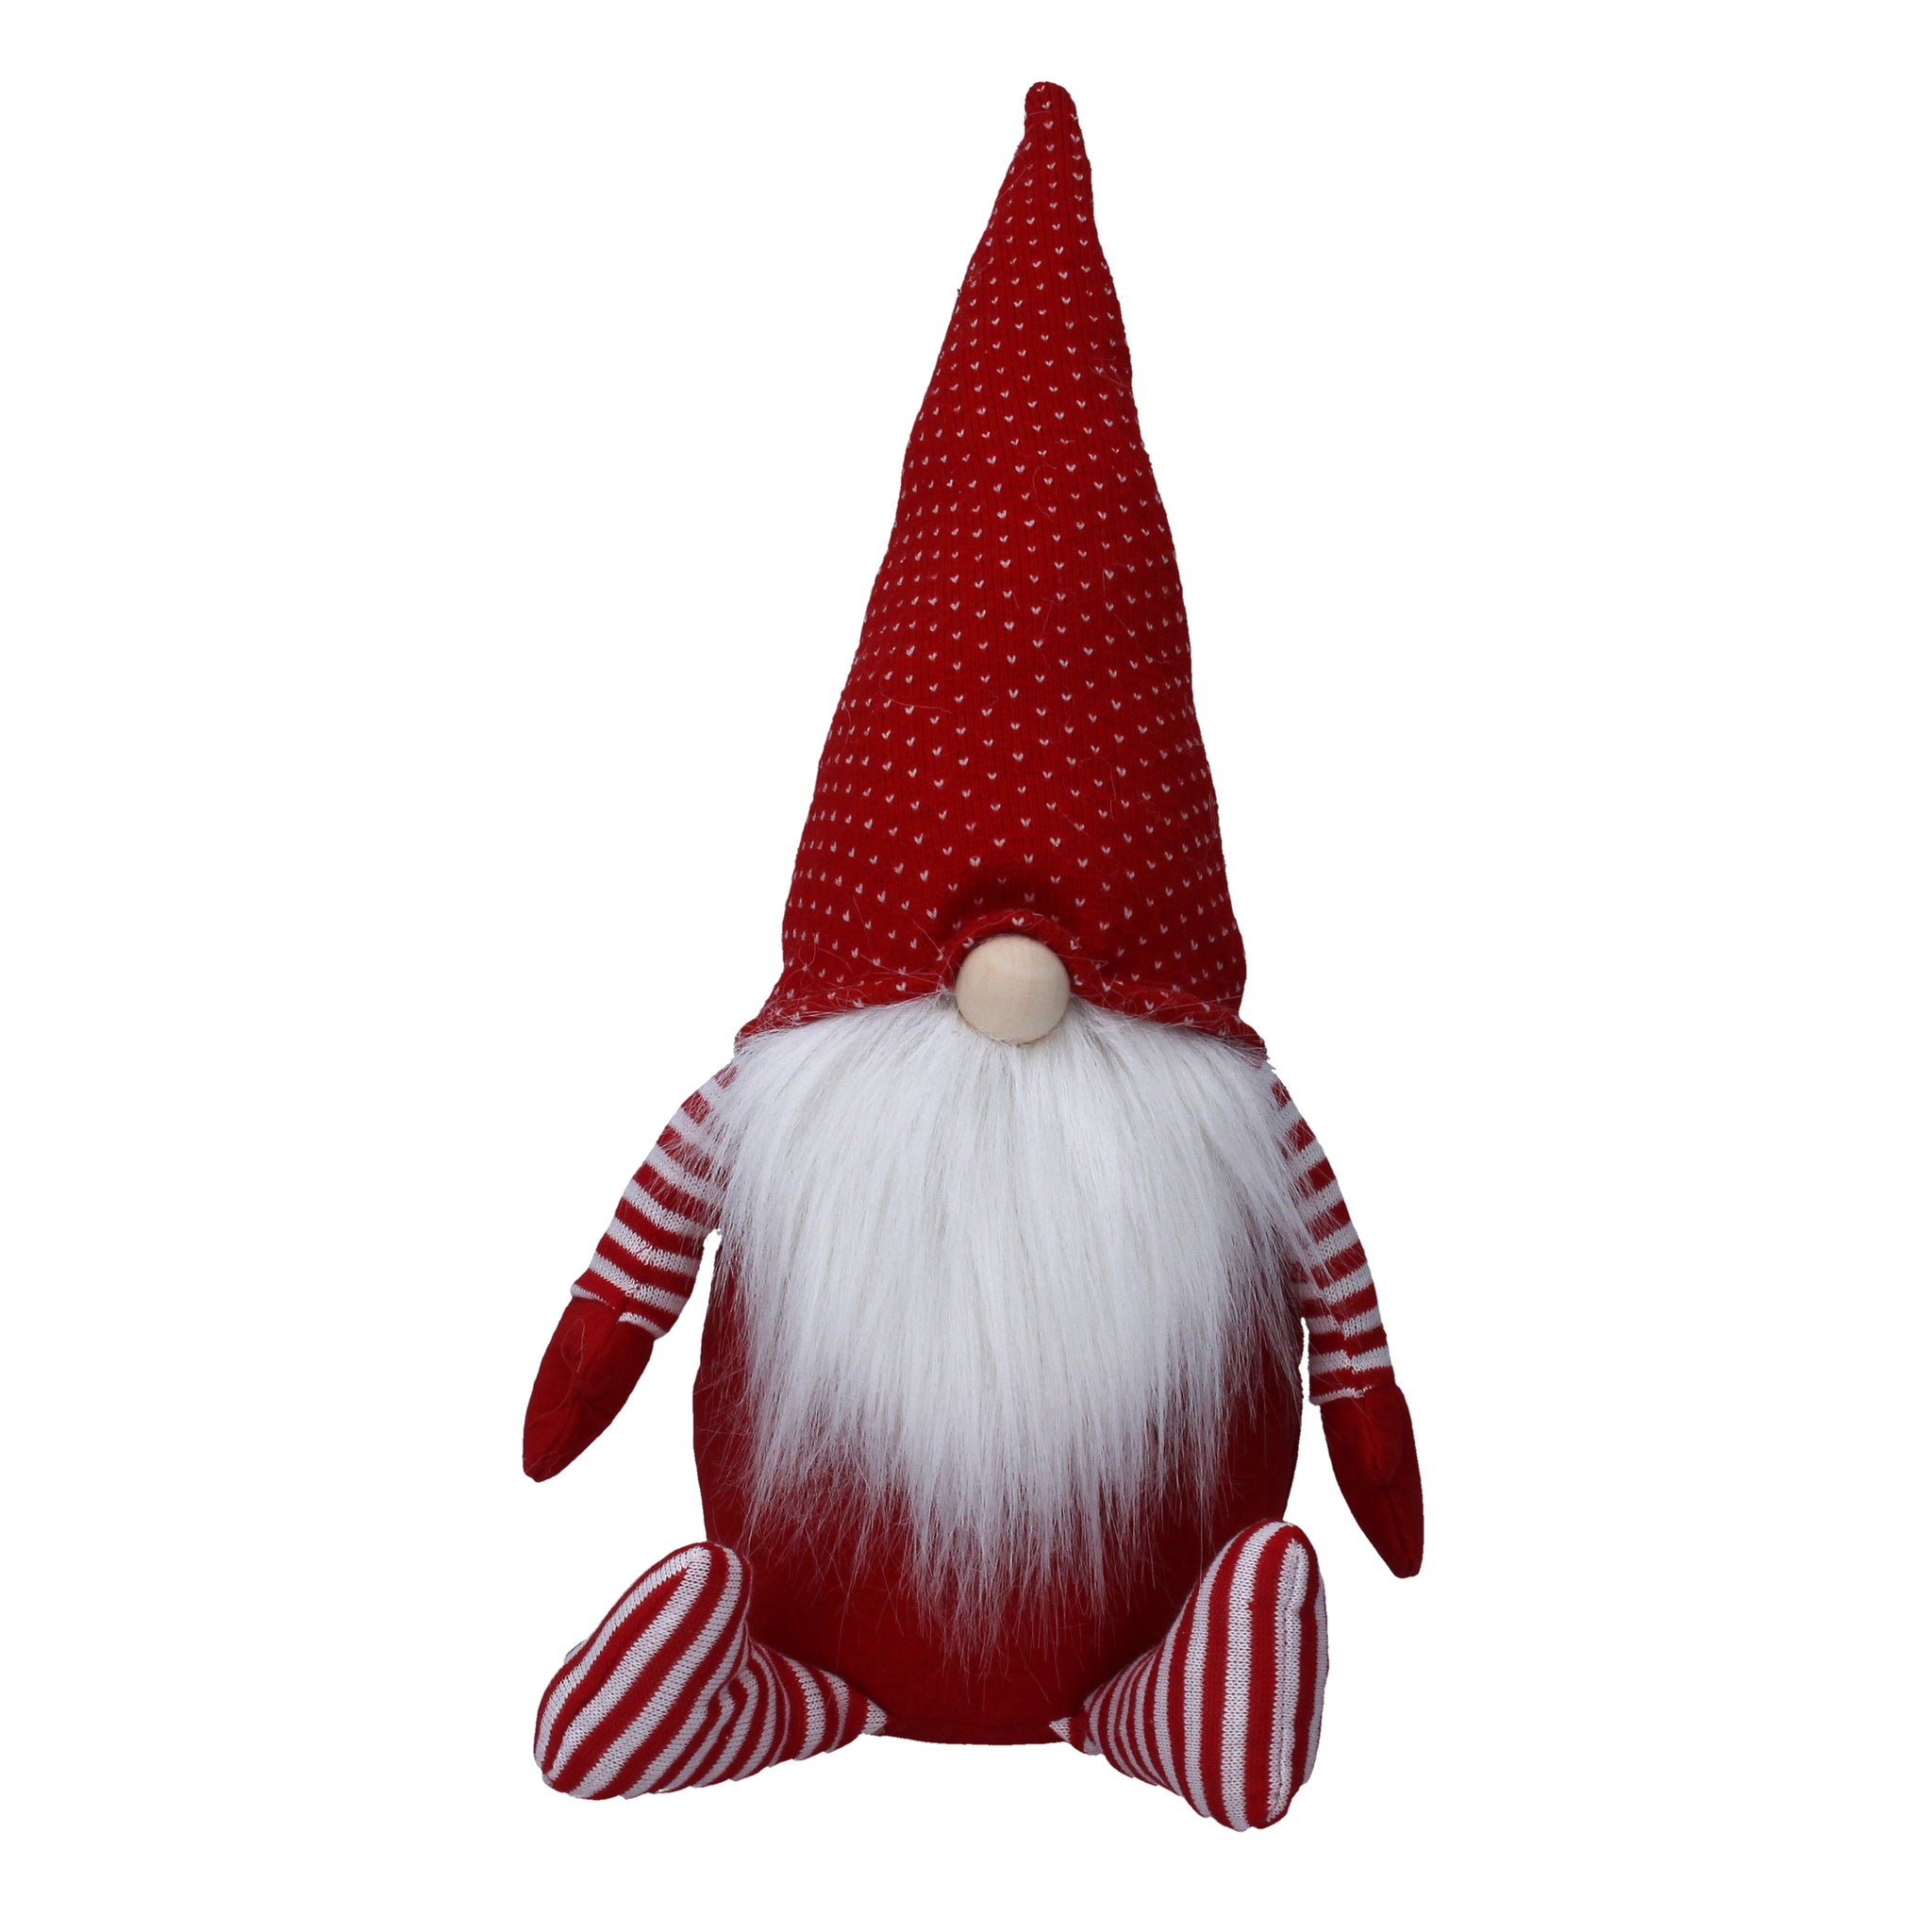 cadeauxwells - Large Red/White Nordic Fabric Sitting Santa Ornament - Gisela Graham - Seasonal